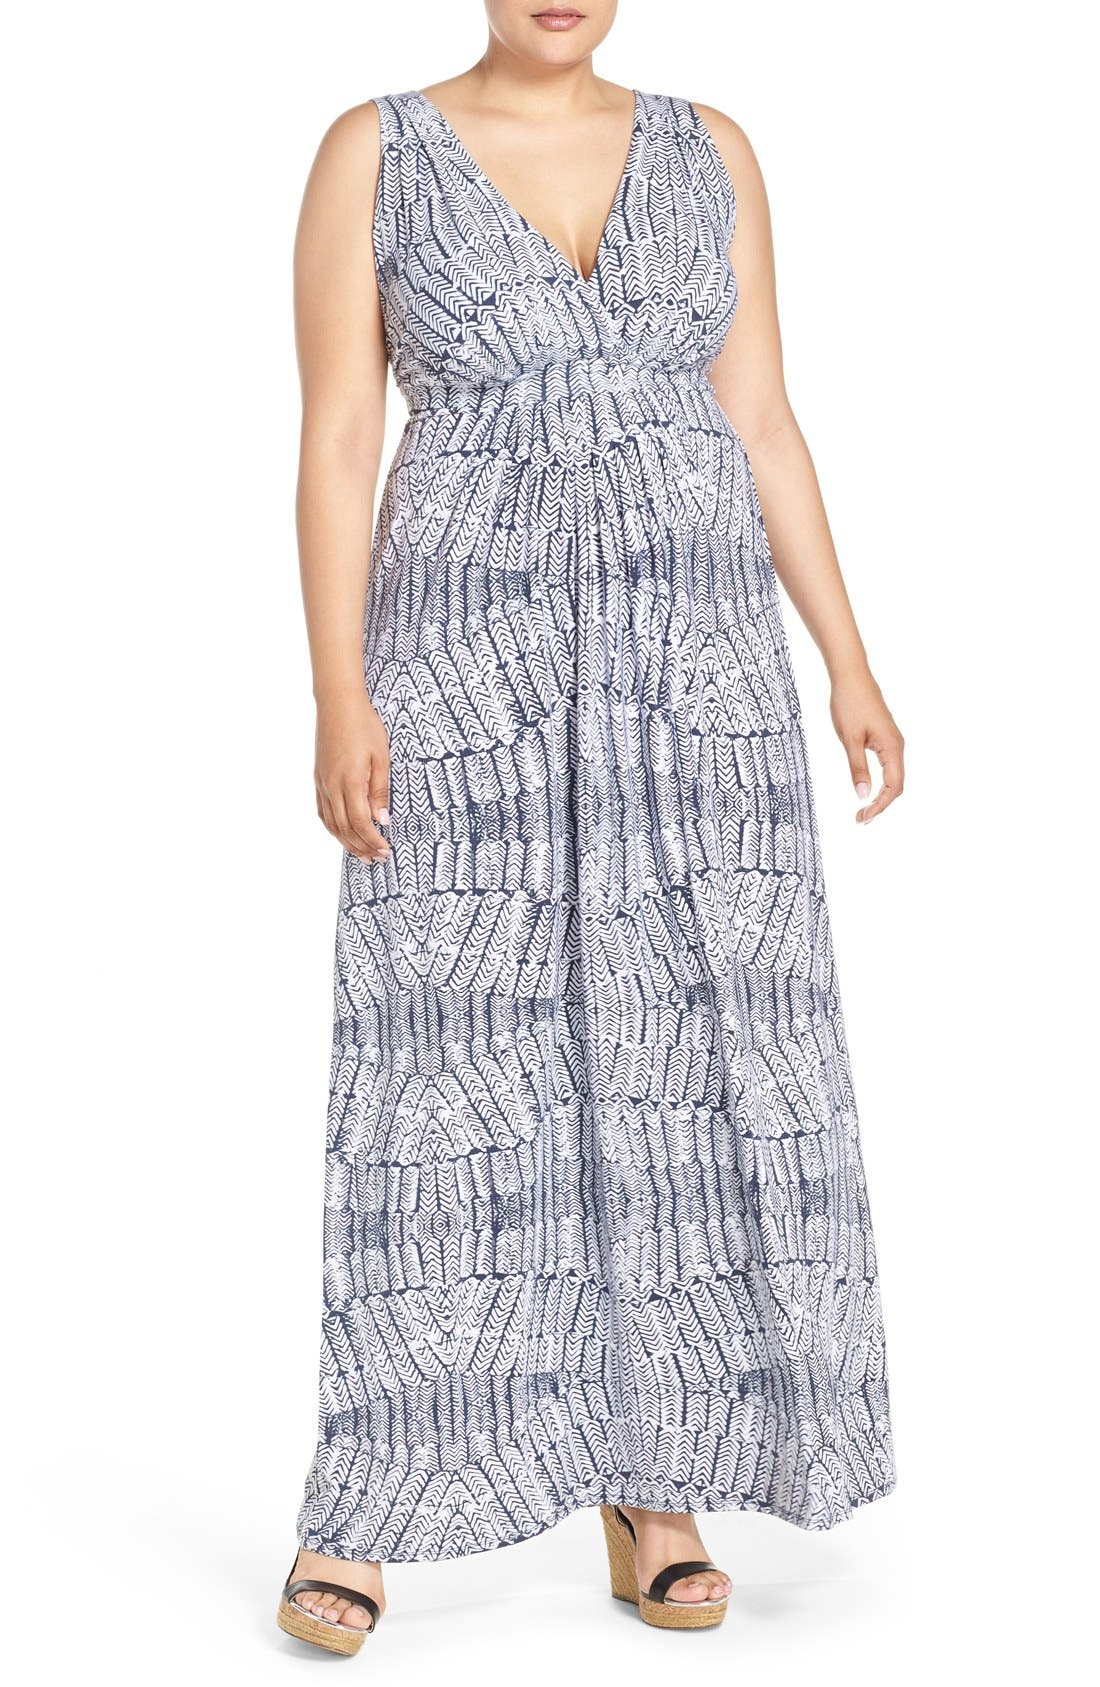 Chloe Empire Waist Maxi Dress,                         Main,                         color, Stamped Feathers